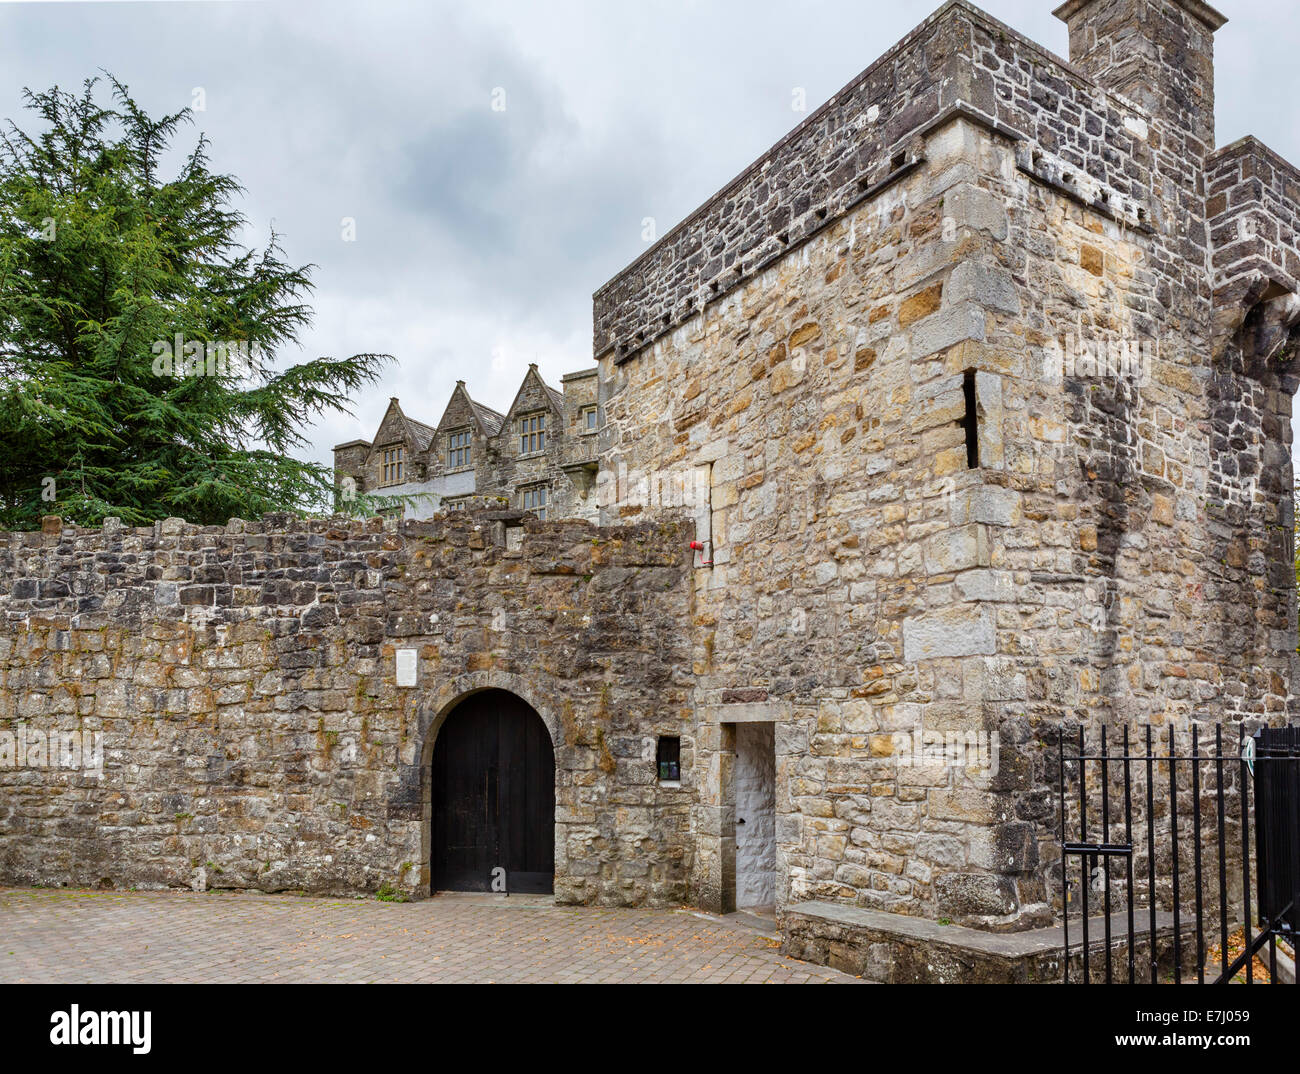 Entrance to Donegal Castle, Donegal, County Donegal, Republic of Ireland - Stock Image